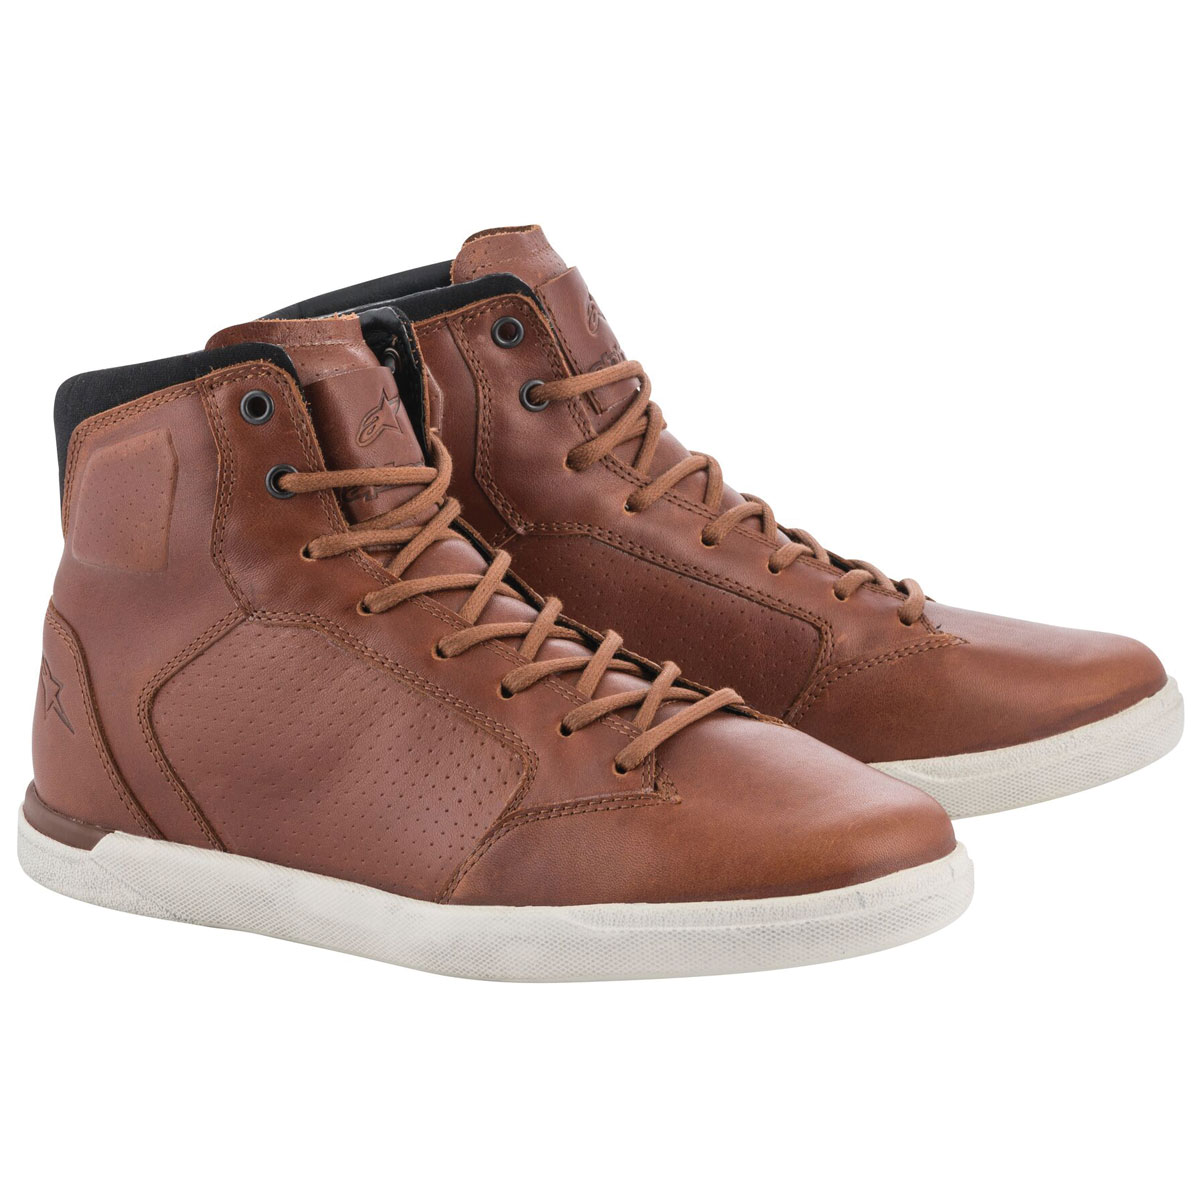 Alpinestars Men's J-Cult Brown Leather Shoes